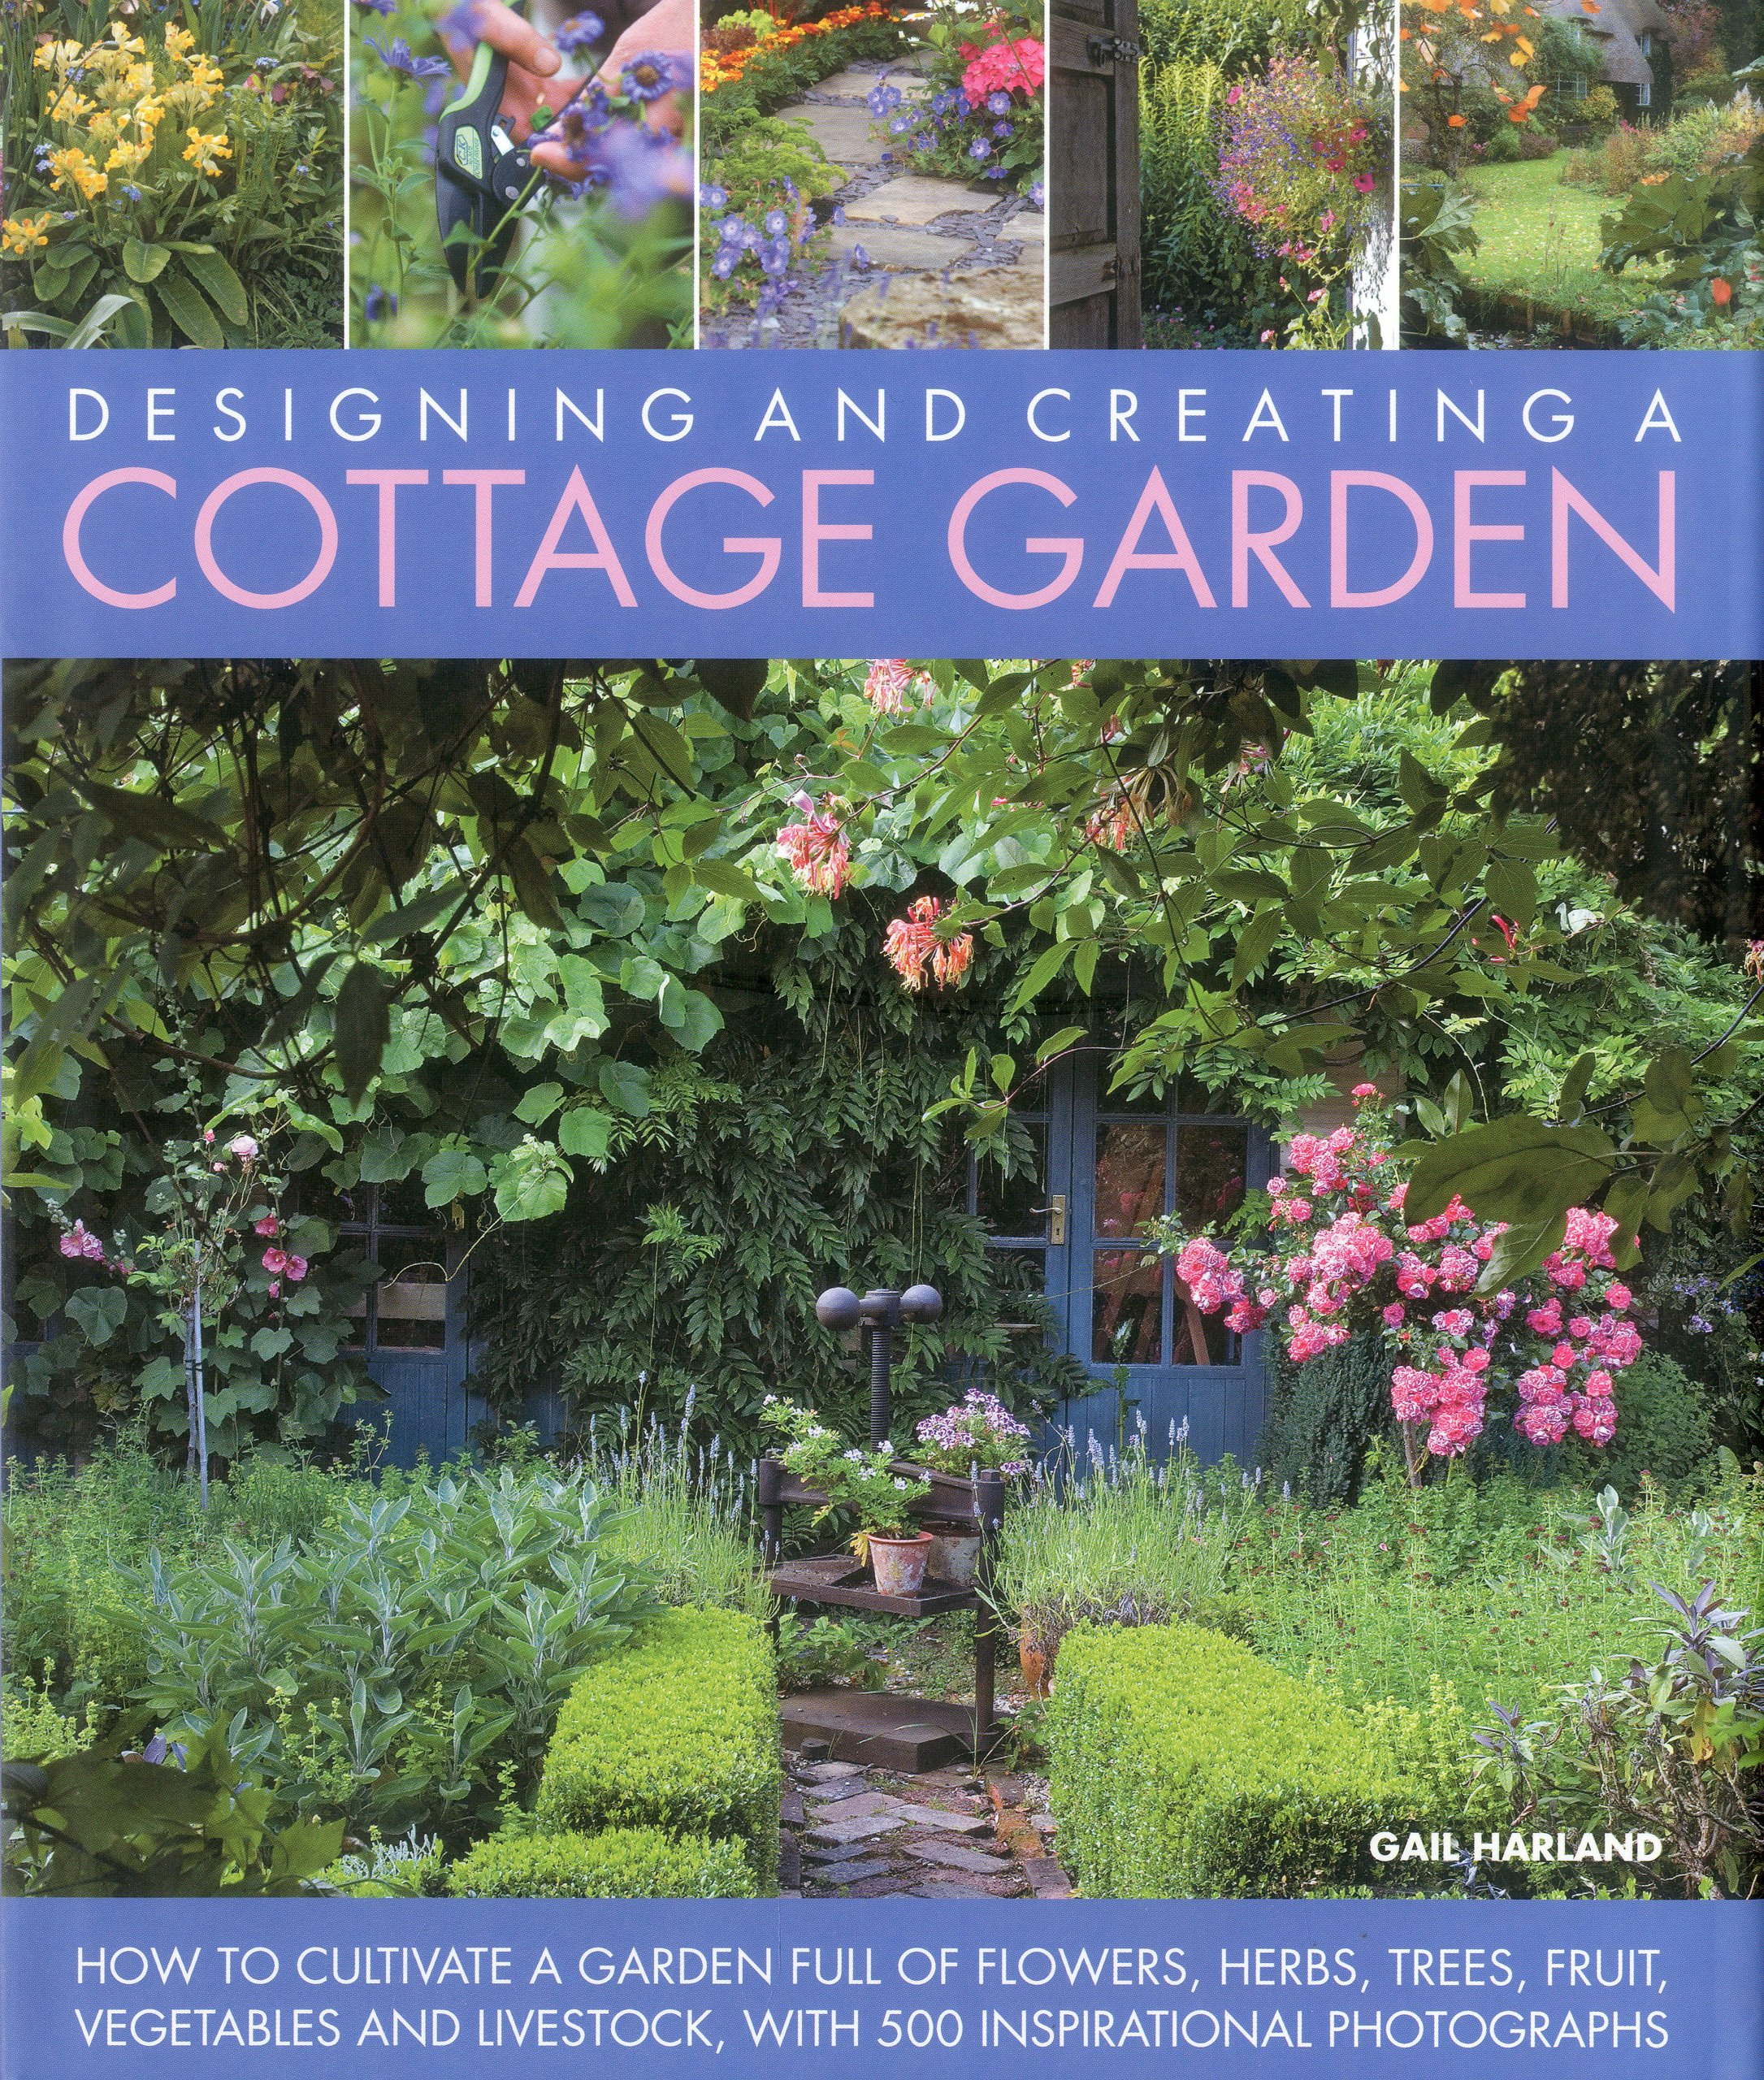 Designing And Creating A Cottage Garden How To Cultivate A Garden Full Of Flowers Herbs Trees Fruit Vegetables And Livestock With 300 Inspirational Photographs Harland Gail 9781903141717 Amazon Com Books,Back Side Boat Neck Blouse Designs Images